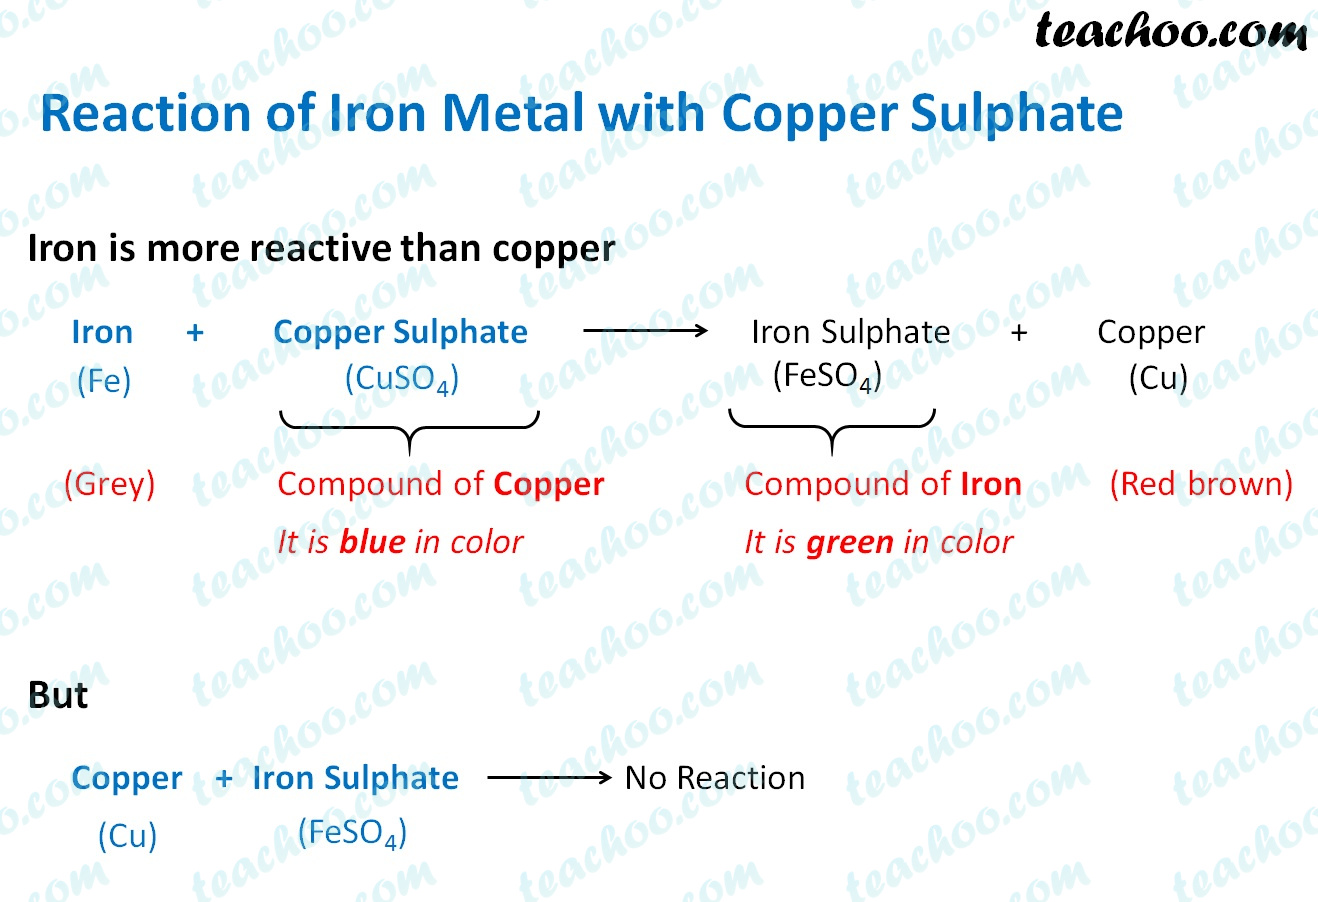 reaction-of-iron-metal-with-cooper-sulphate.jpg